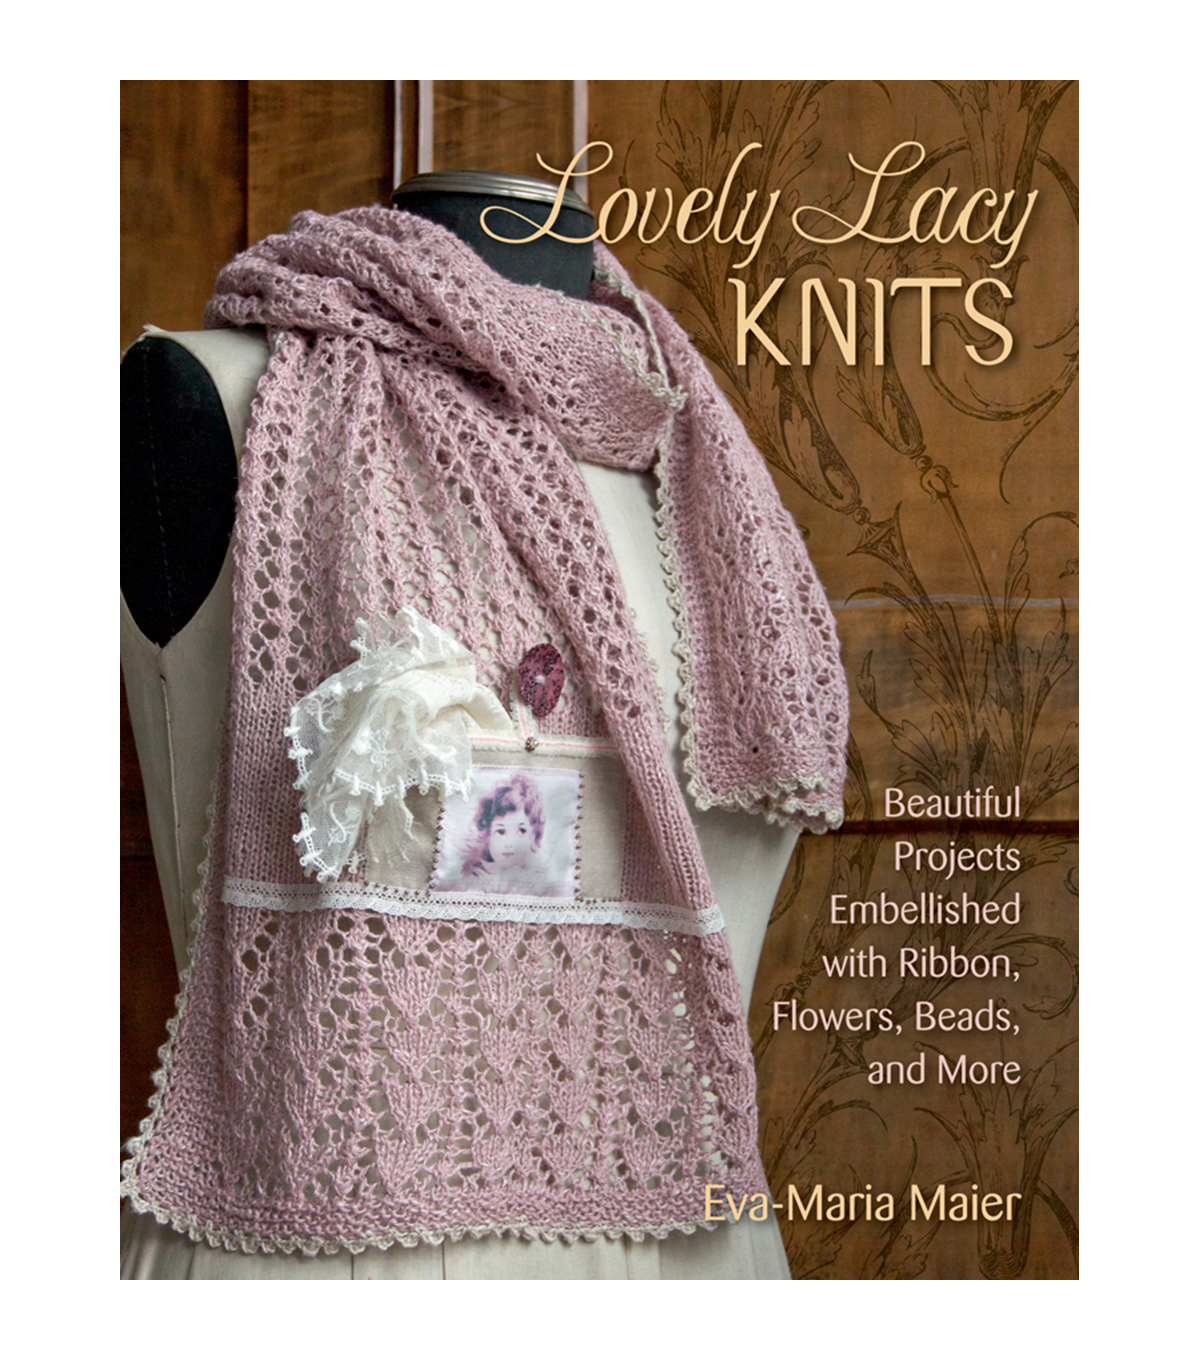 Eva-Maria Maier Lovely Lacy Knits Knitting Book